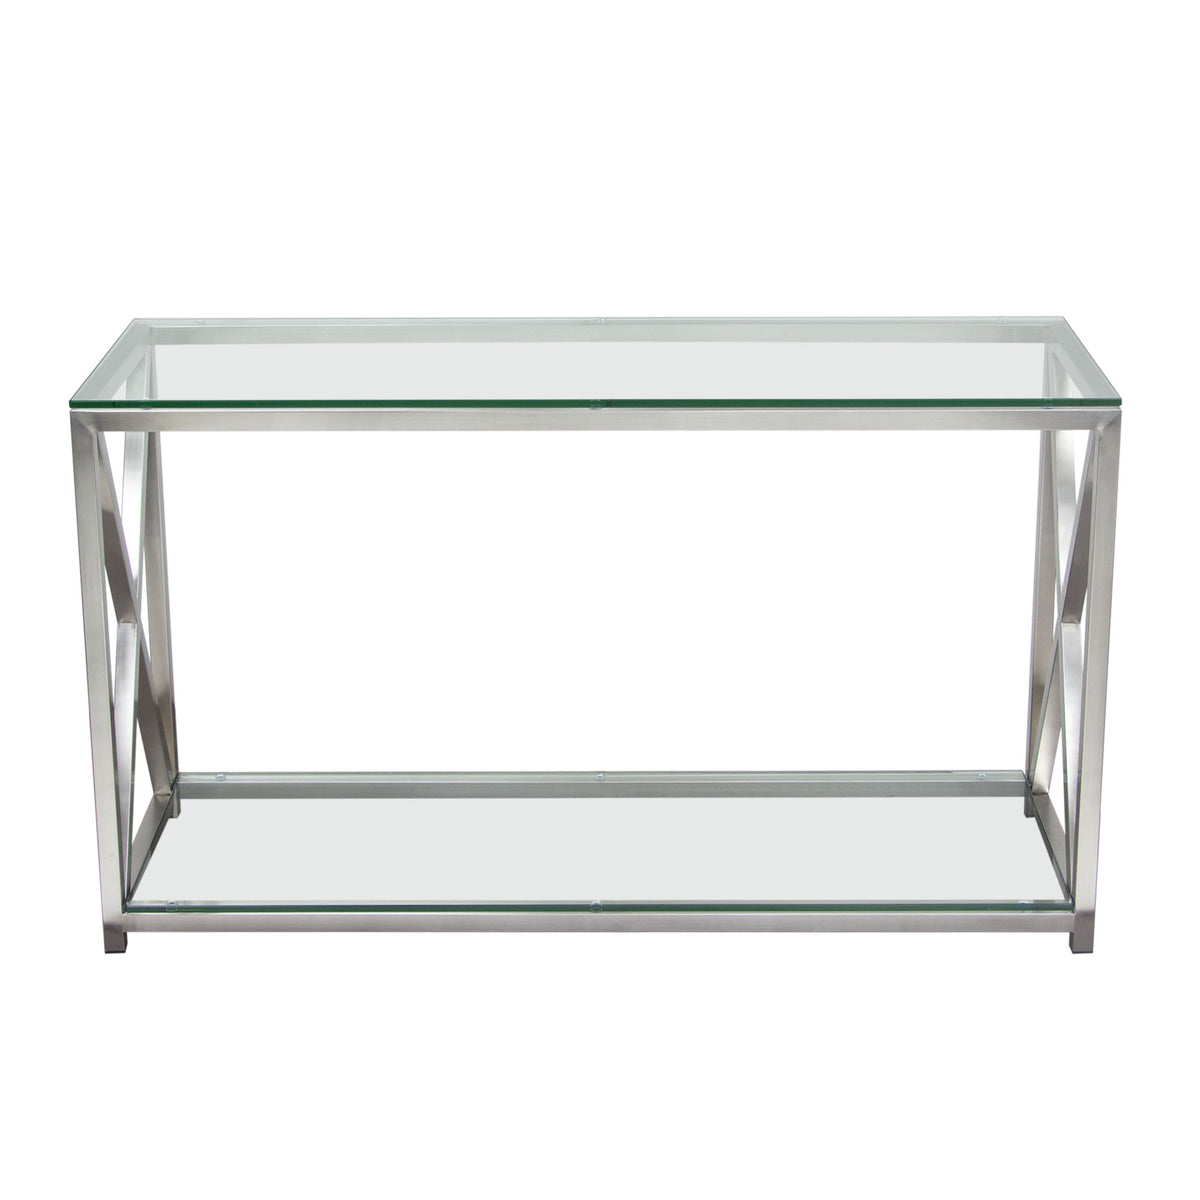 X Factor Console Table With Clear Glass Top And Shelf With Brushed  Stainless Steel Frame   Stainless Steel U2014 Sofa Shack